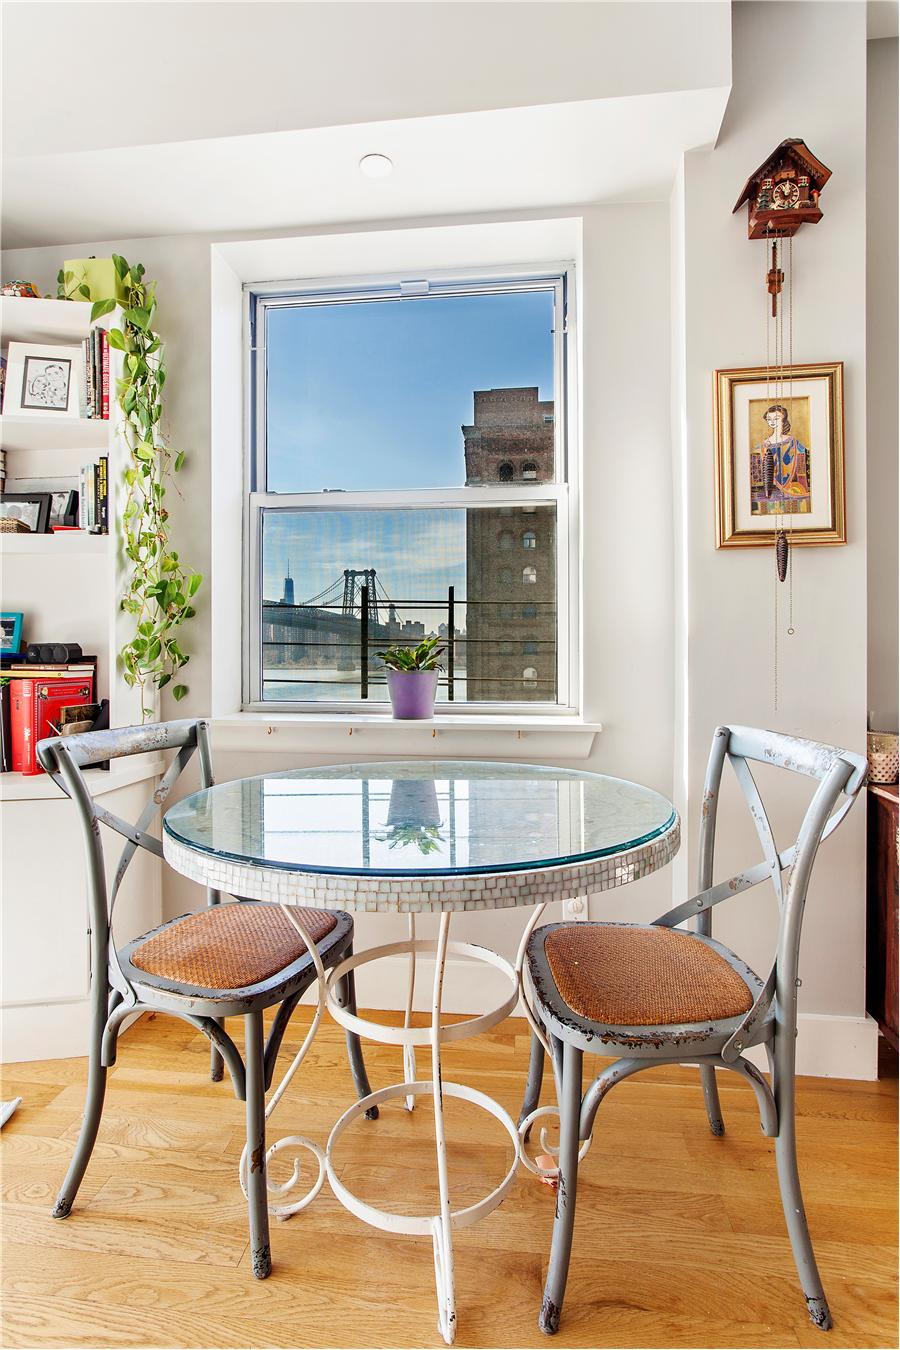 kitchen table and window new.jpg